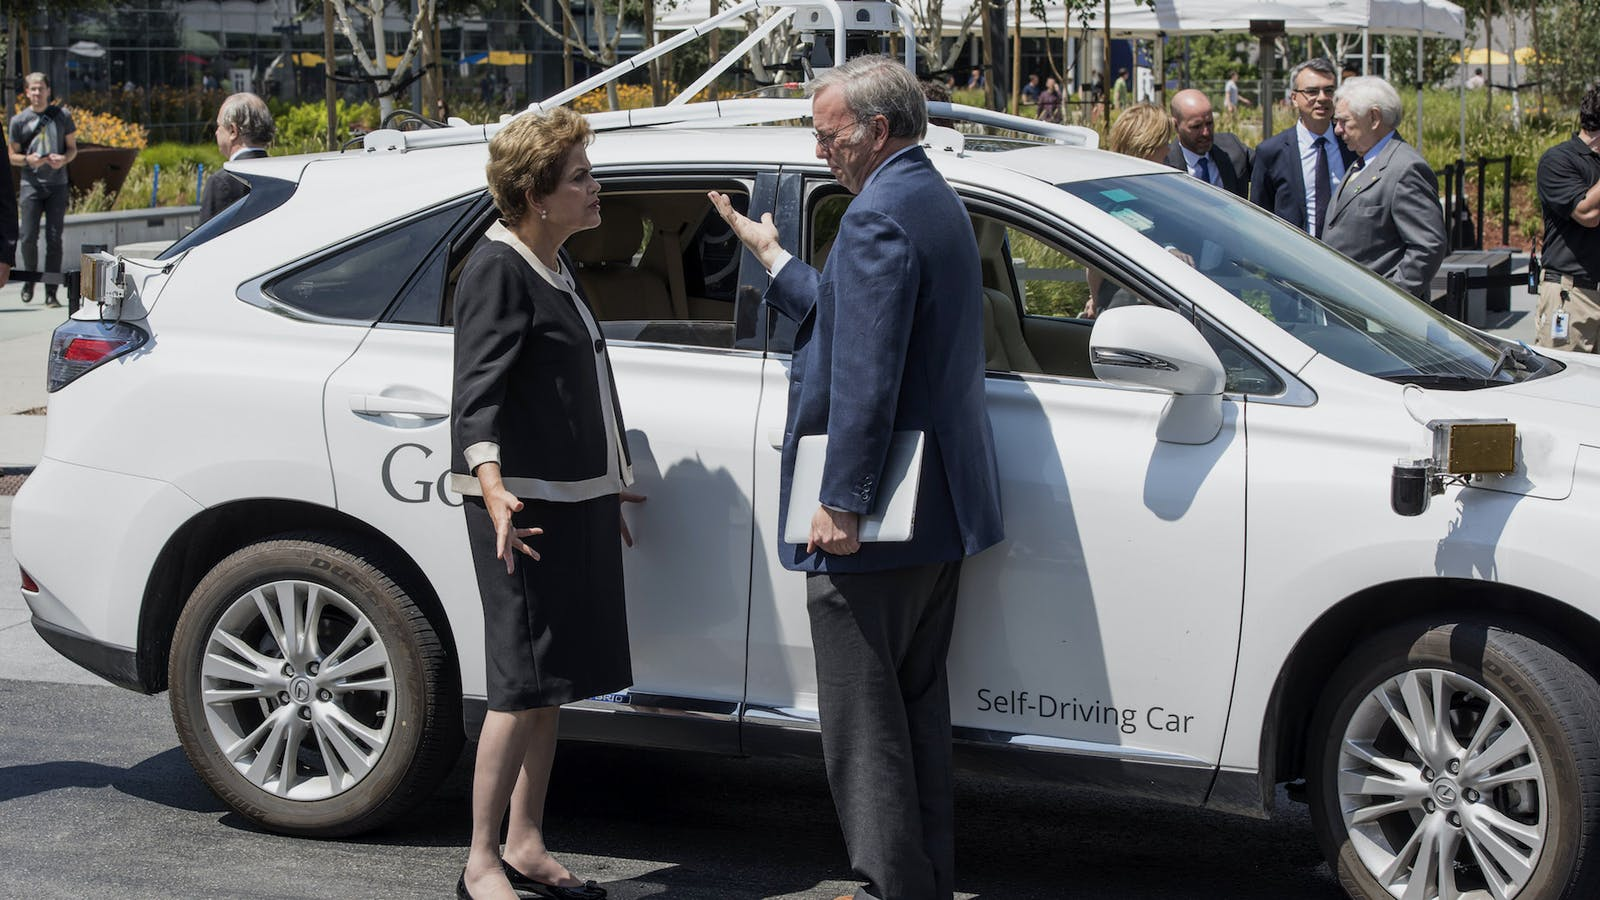 Google's self-driving car system attached to a Lexus, 2015.